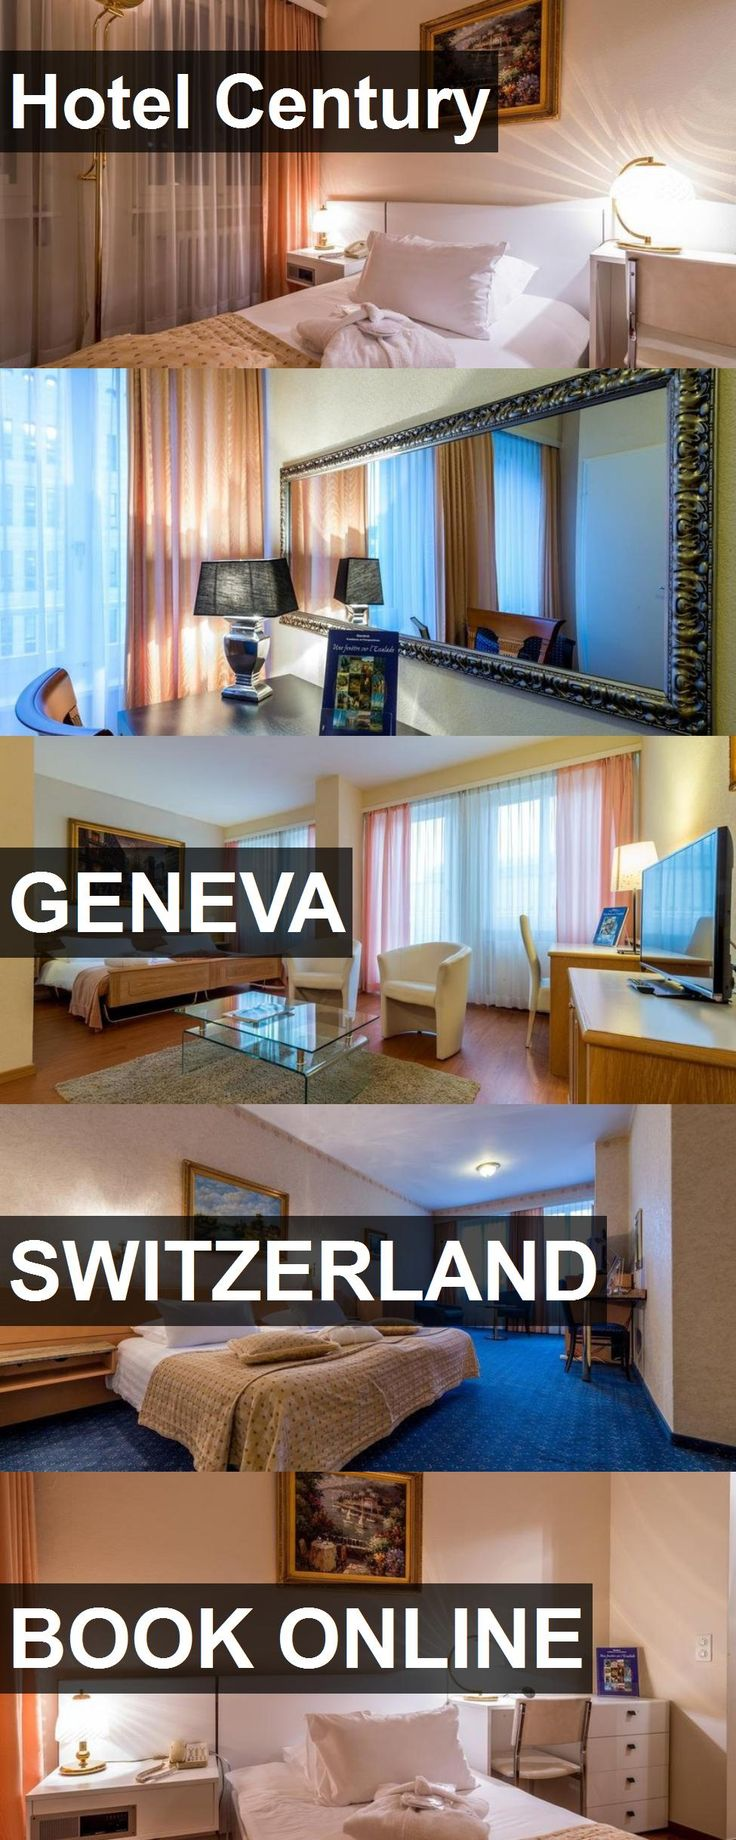 Hotel Century in Geneva, Switzerland. For more information, photos, reviews and best prices please follow the link. #Switzerland #Geneva #travel #vacation #hotel